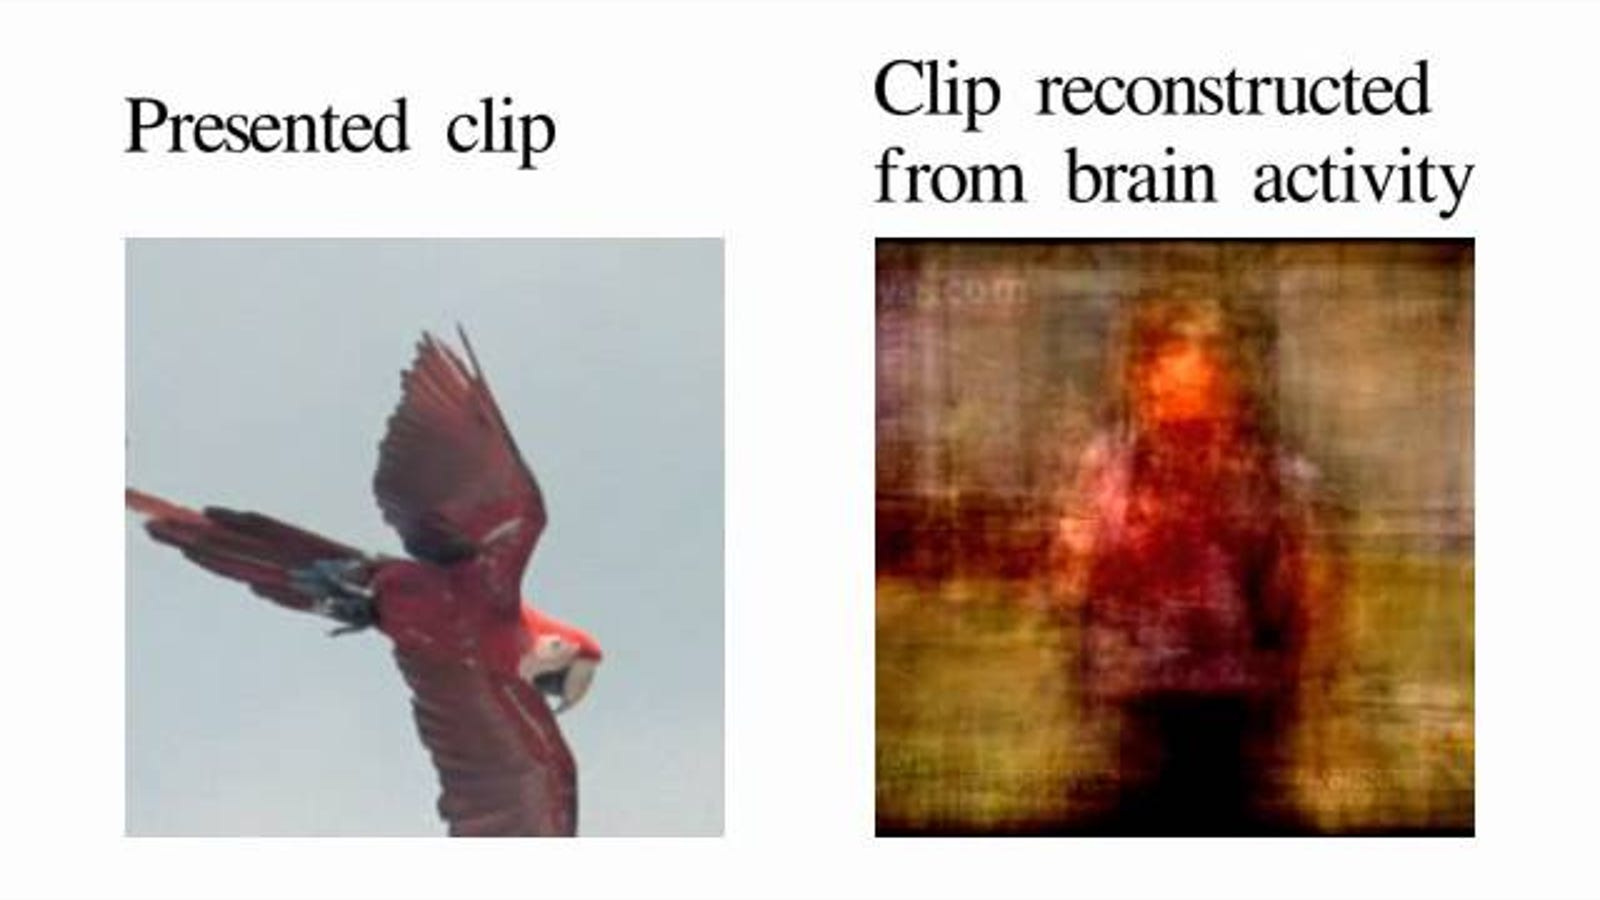 Scientists Reconstruct Brains' Visions Into Digital Video In Historic Experiment